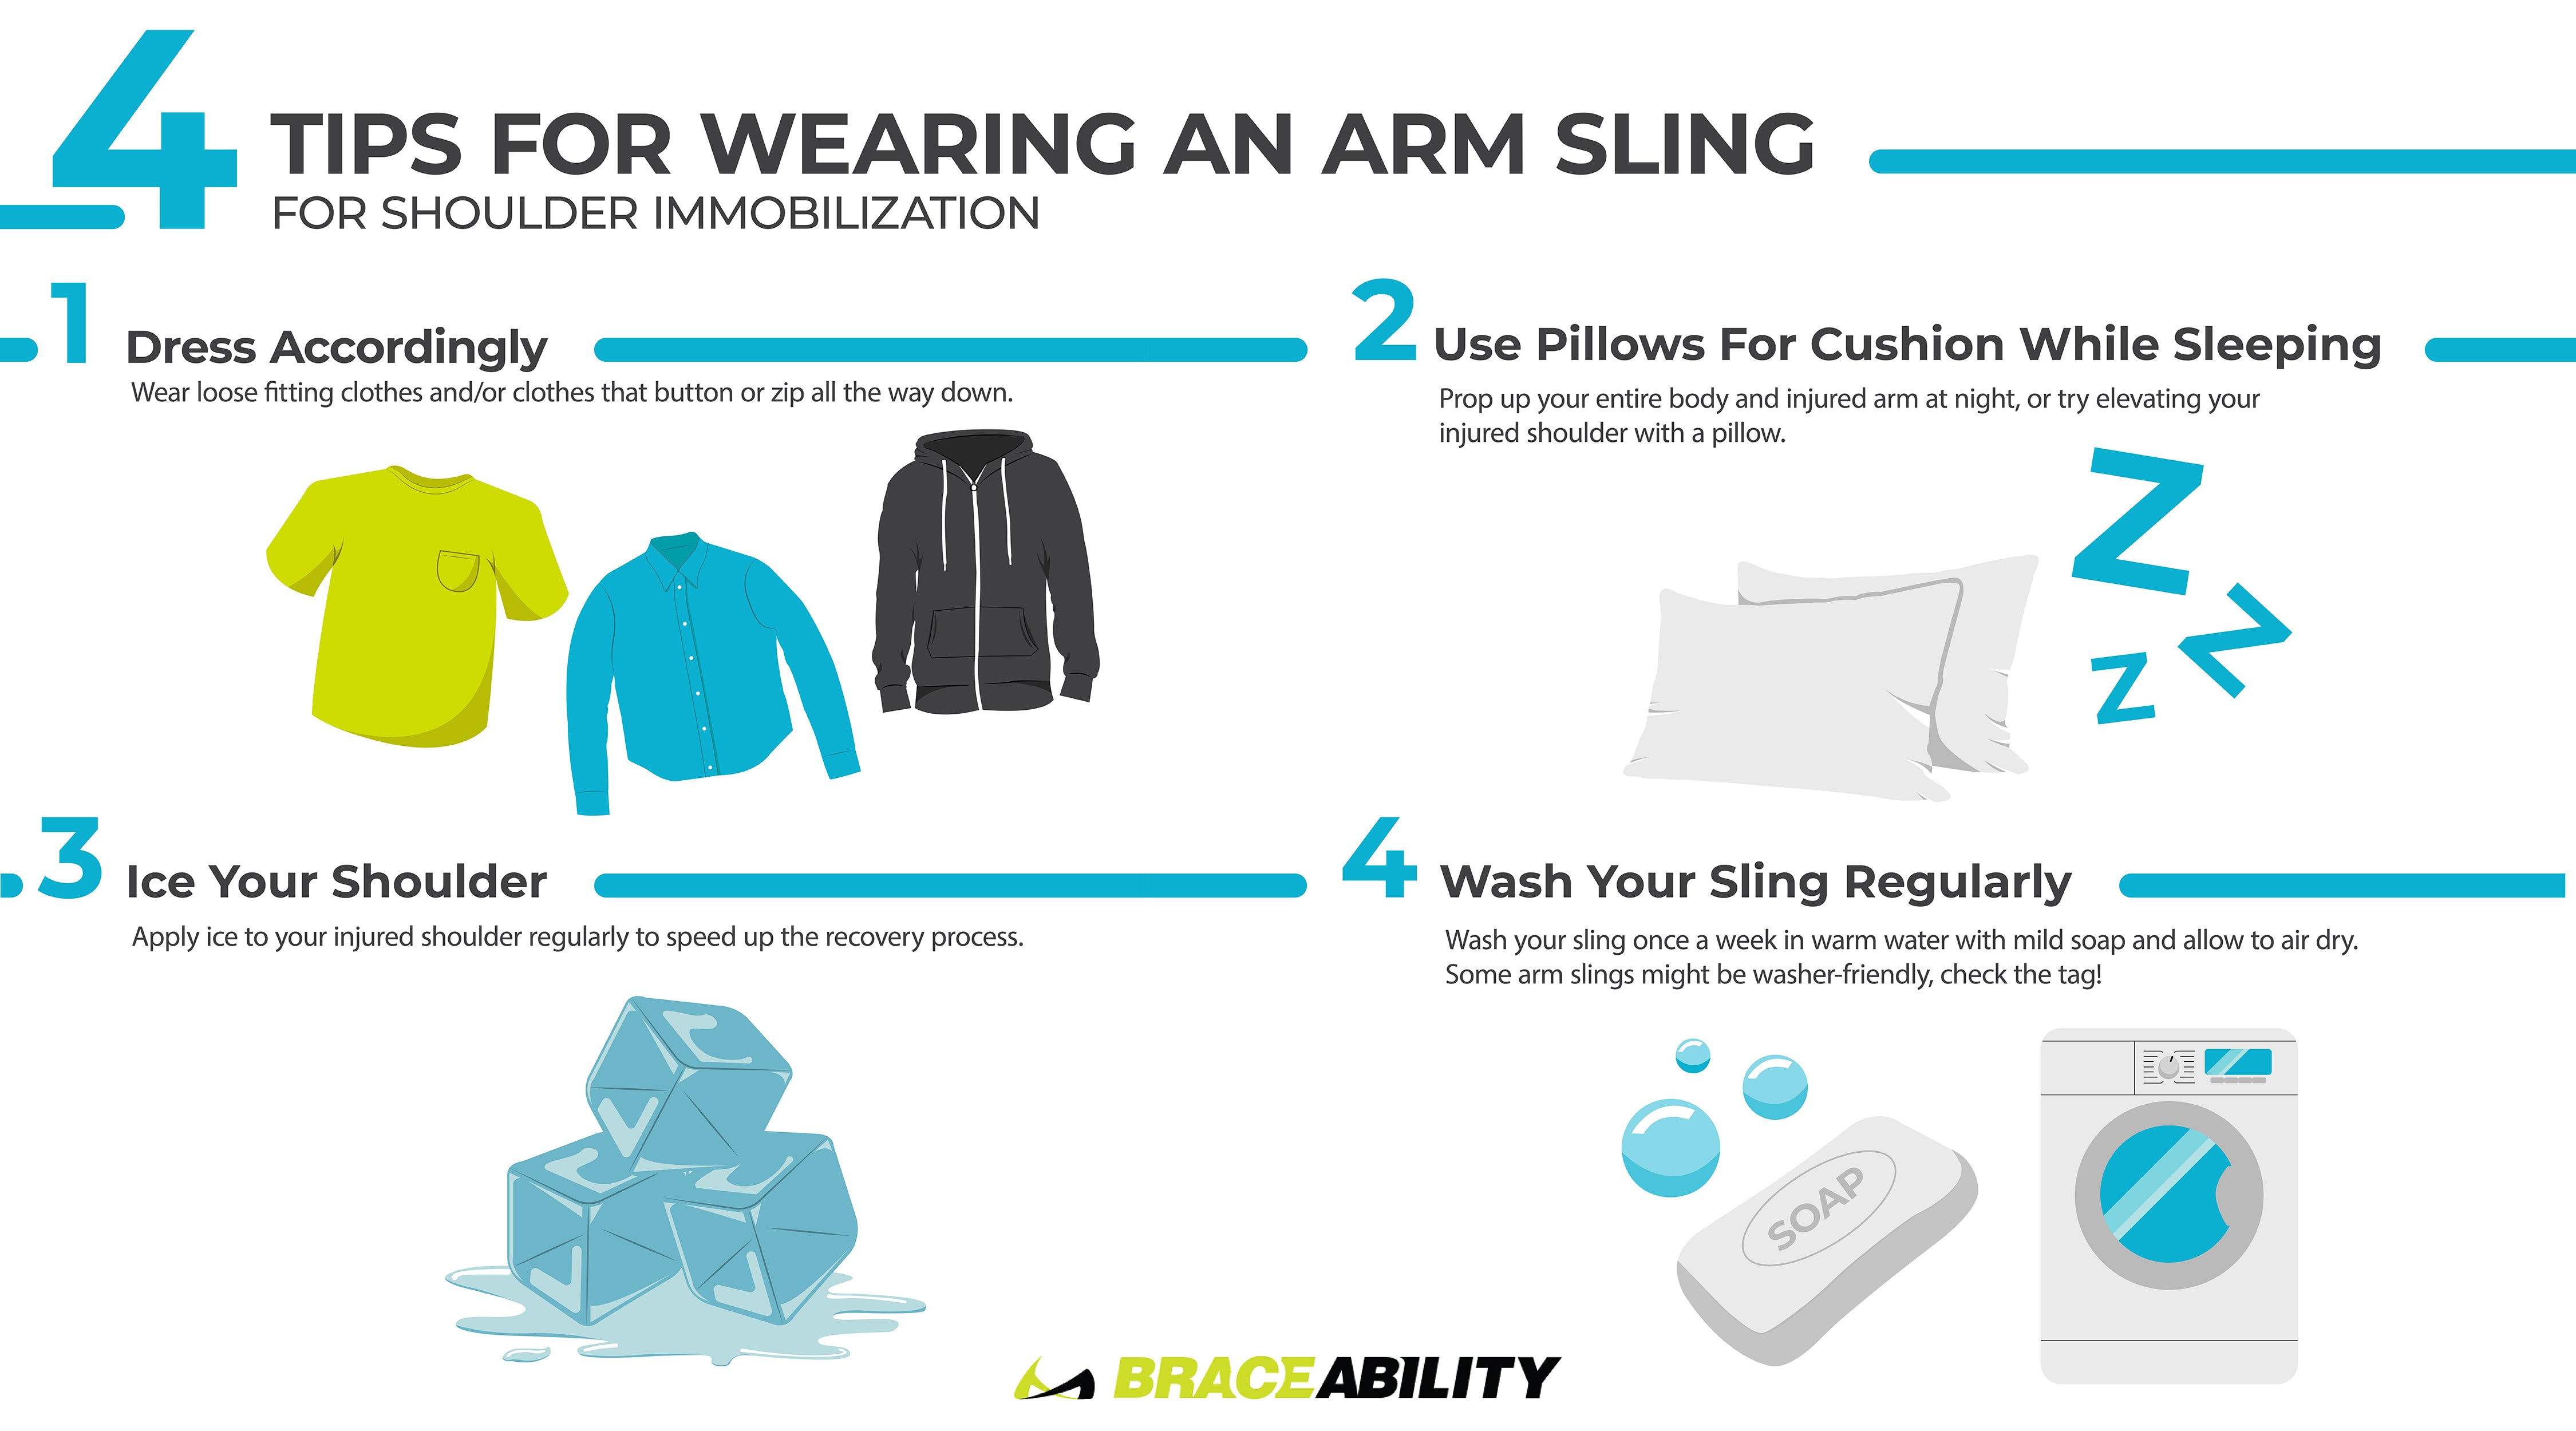 you need to wear the proper clothes and follow the correct process when wearing the braceability sling and swathe